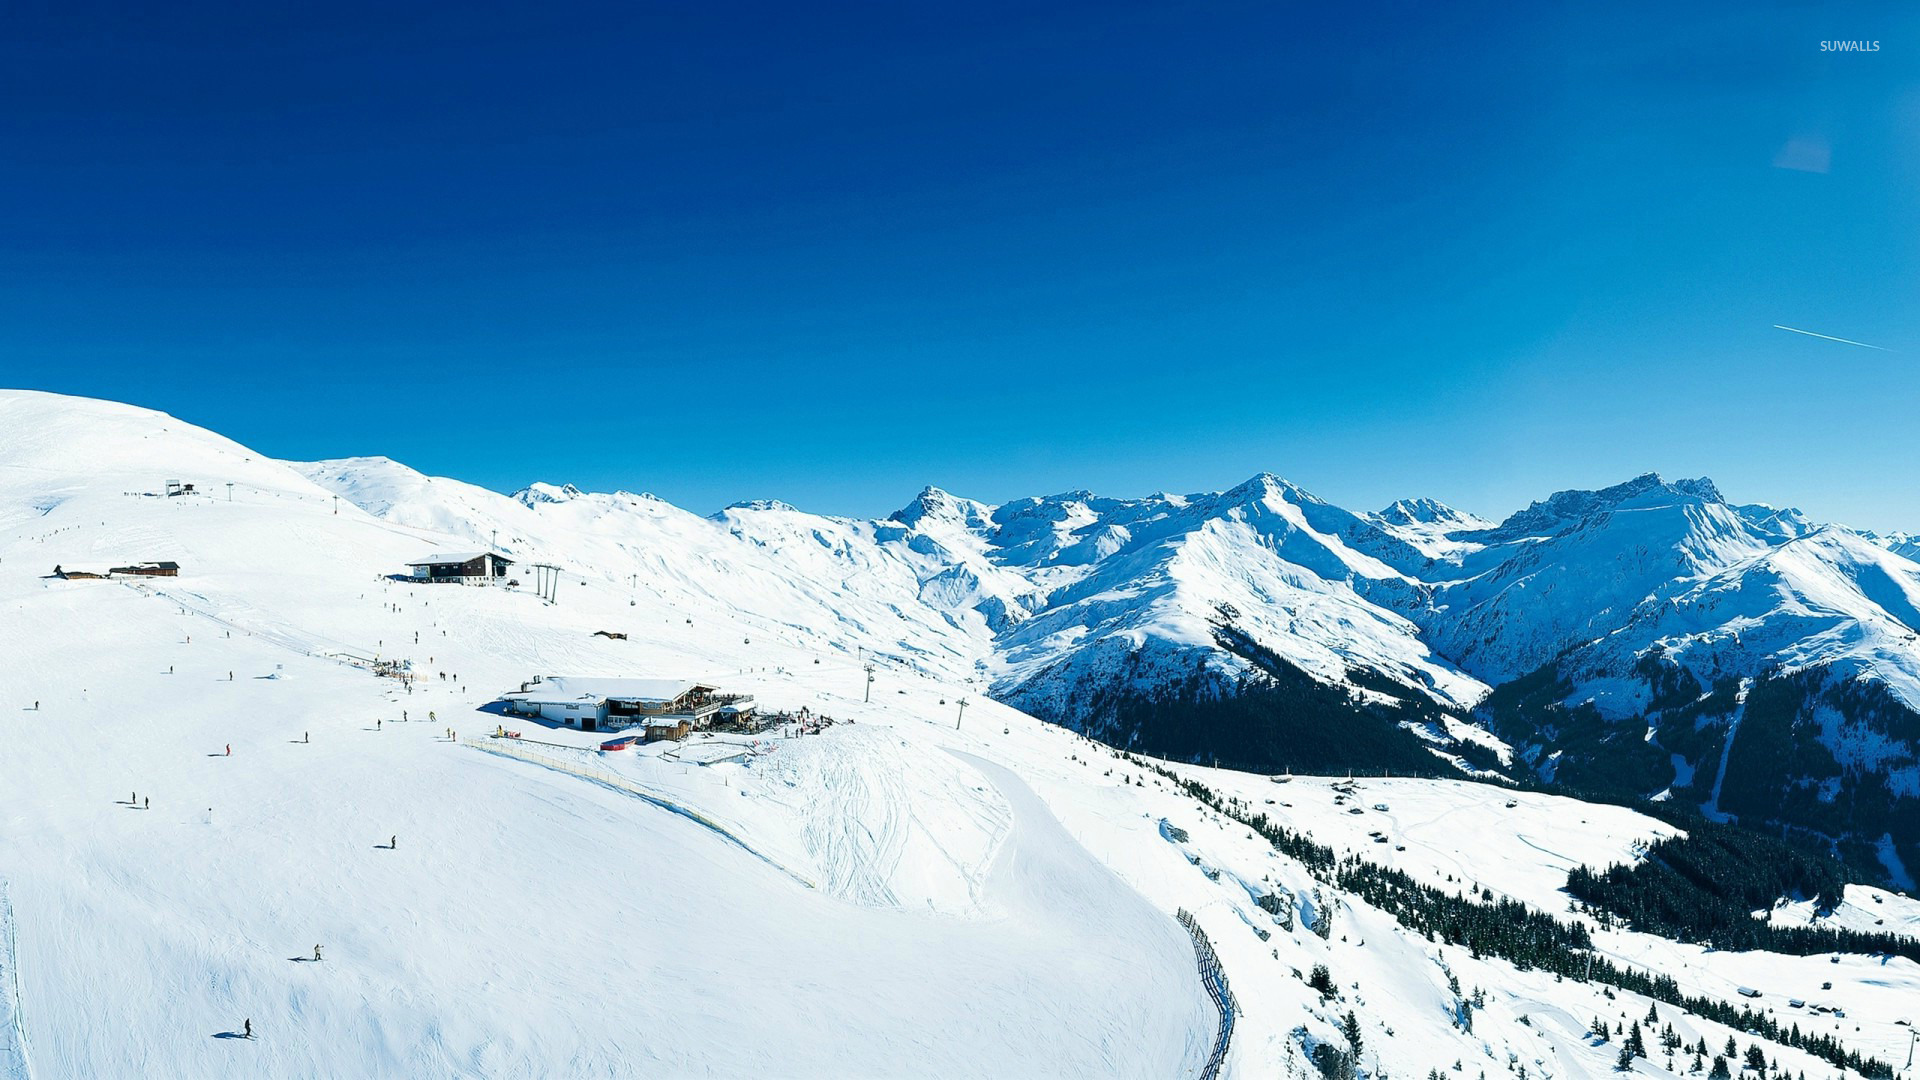 wallpapers and screensavers skiing world wallpapers trendingspace 1366x768